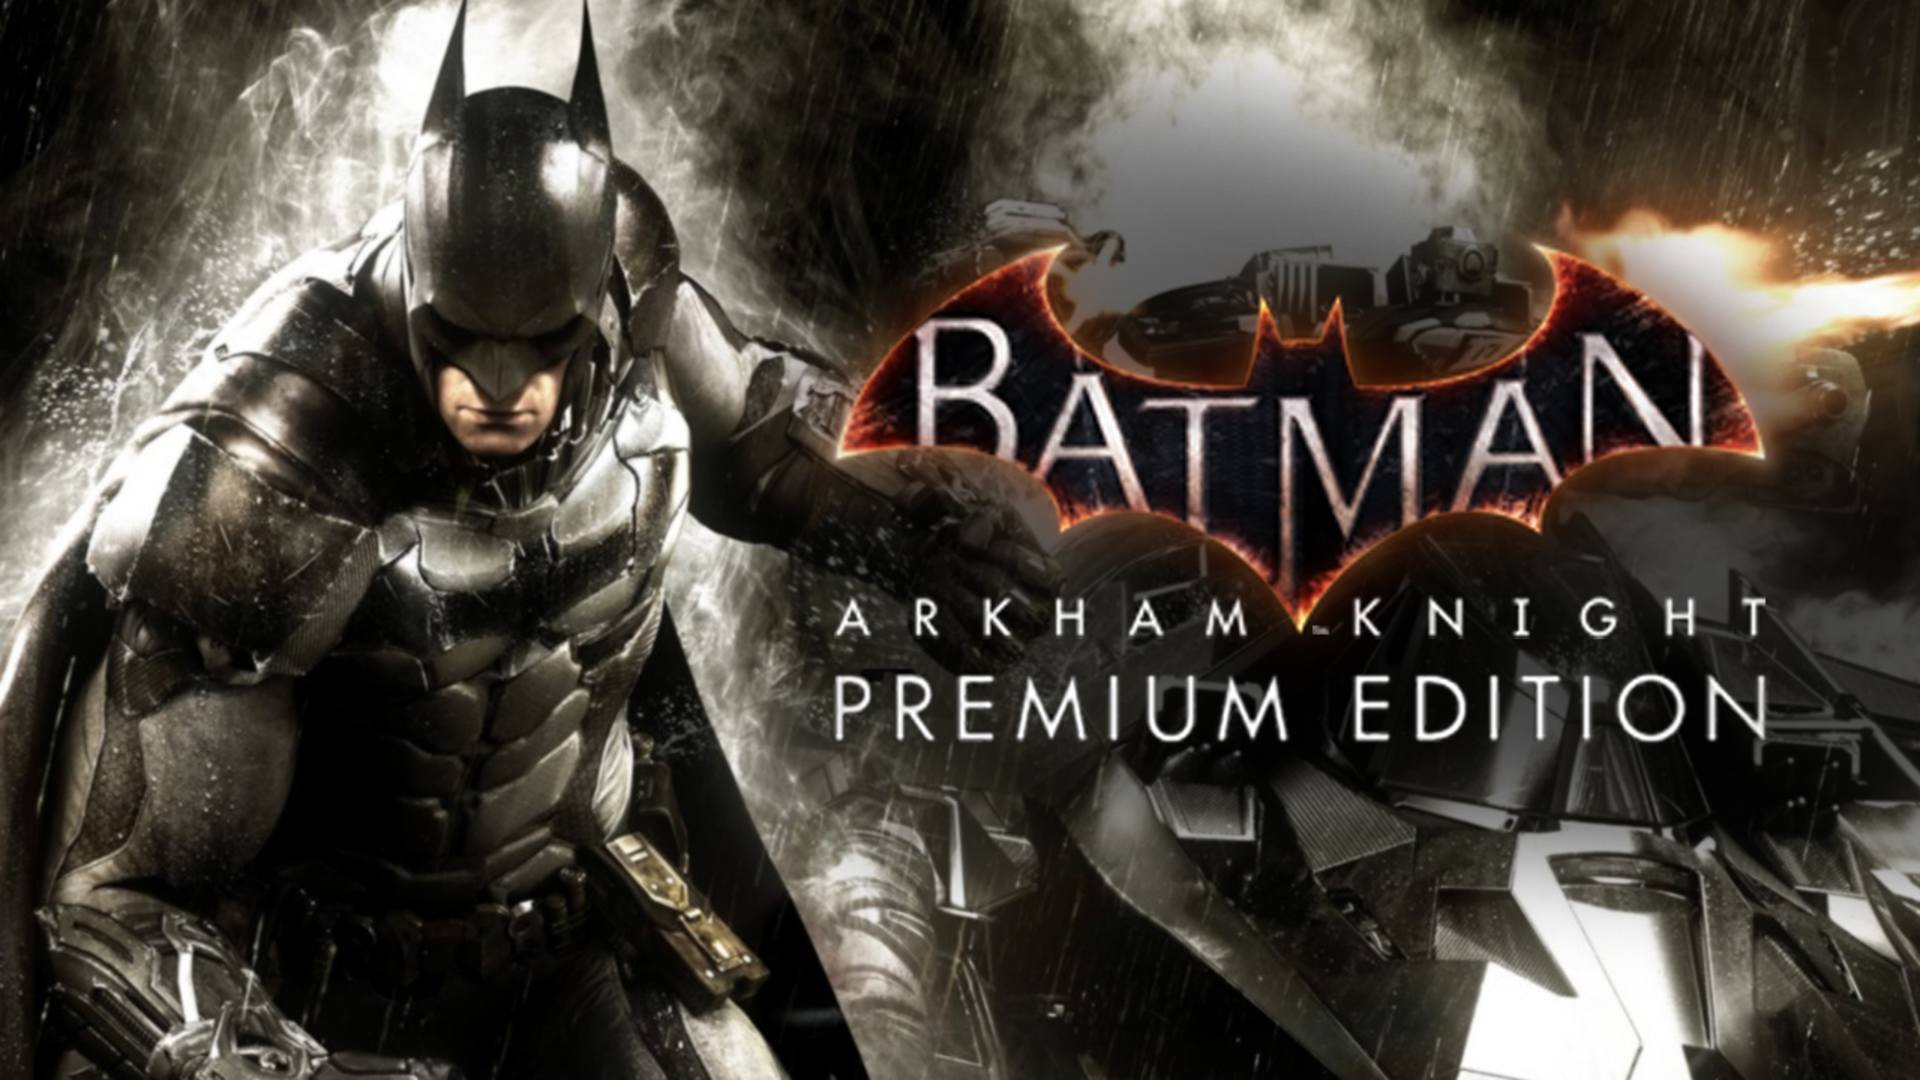 Batman: Arkham Knight Premium Edition Highly Compressed PC Game Download